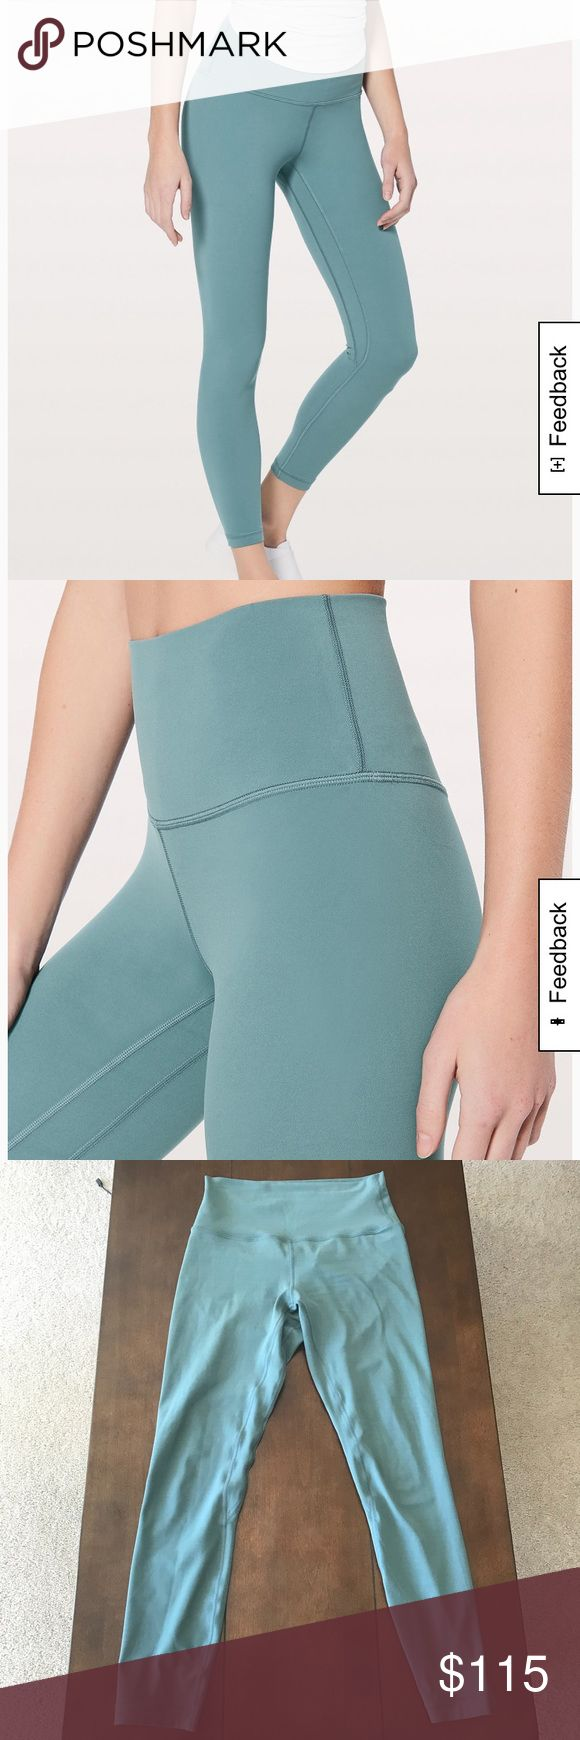 """Lululemon Align II Size 6 lululemon Align II in Mystic Green! I absolutely love this color and was devastated when it sold out online before I could get my size (4). I bought these on Ⓜ️ in a size 6 hoping that they would fit similarly. Unfortunately they do not, so I am reselling them. The color is hard to capture so I included the stock pics from lulus website. The color is definitely closest to the stock photos.  Size 6 Mystic Green 25"""" (ankle length)  Willing to trade for size 4 aligns…"""